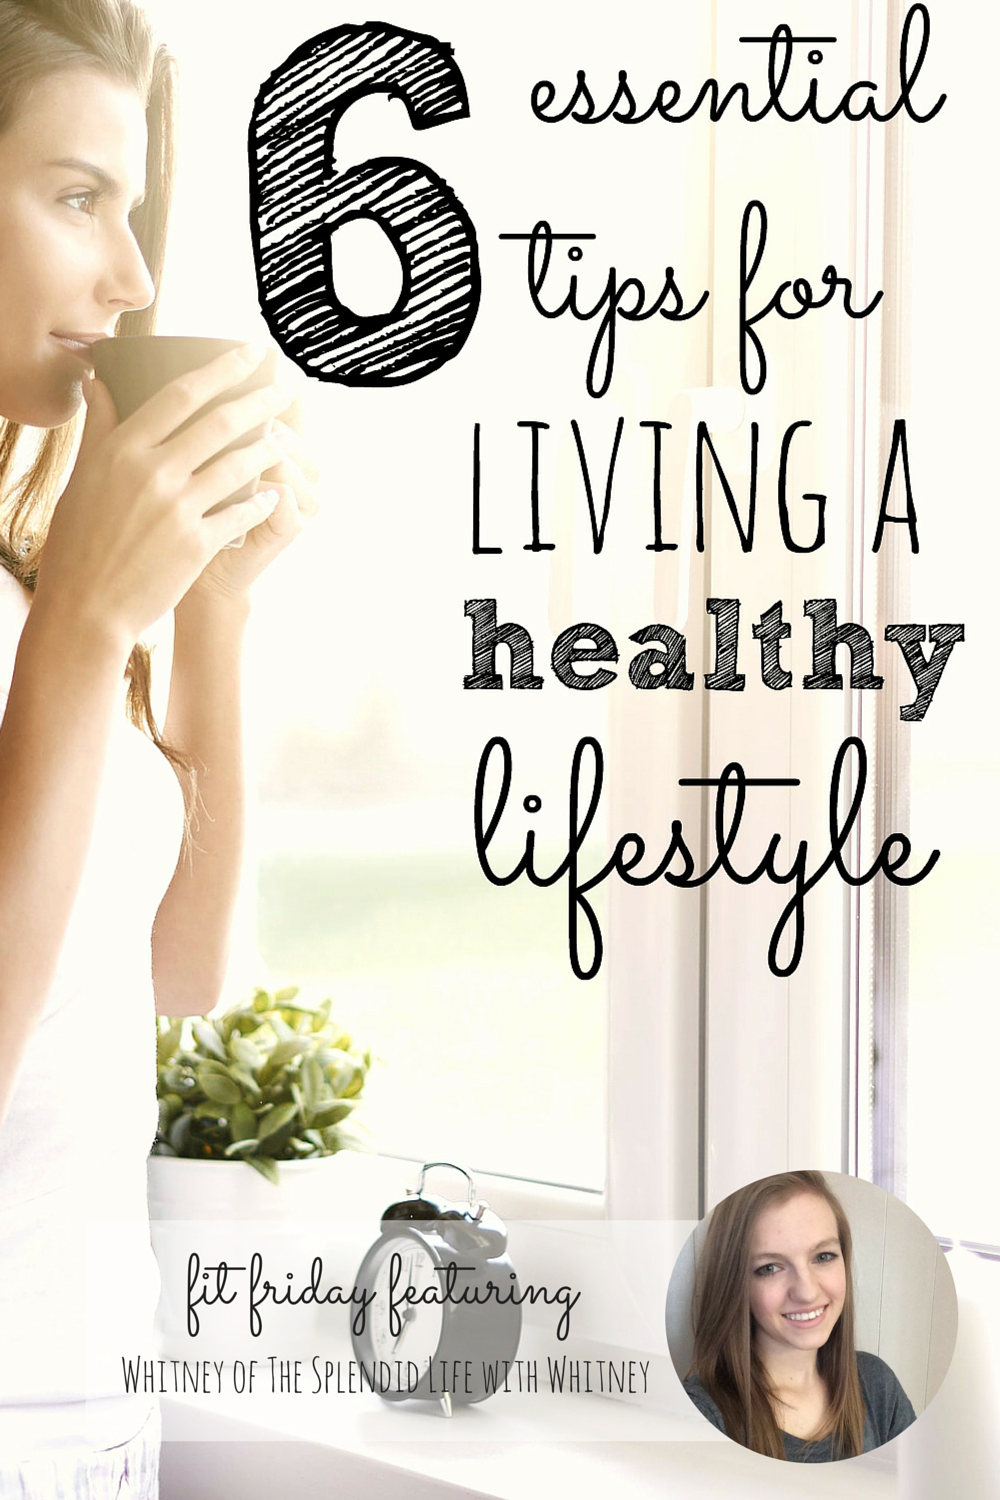 Looking to start a healthy lifestyle? Use these simple tips to get started!